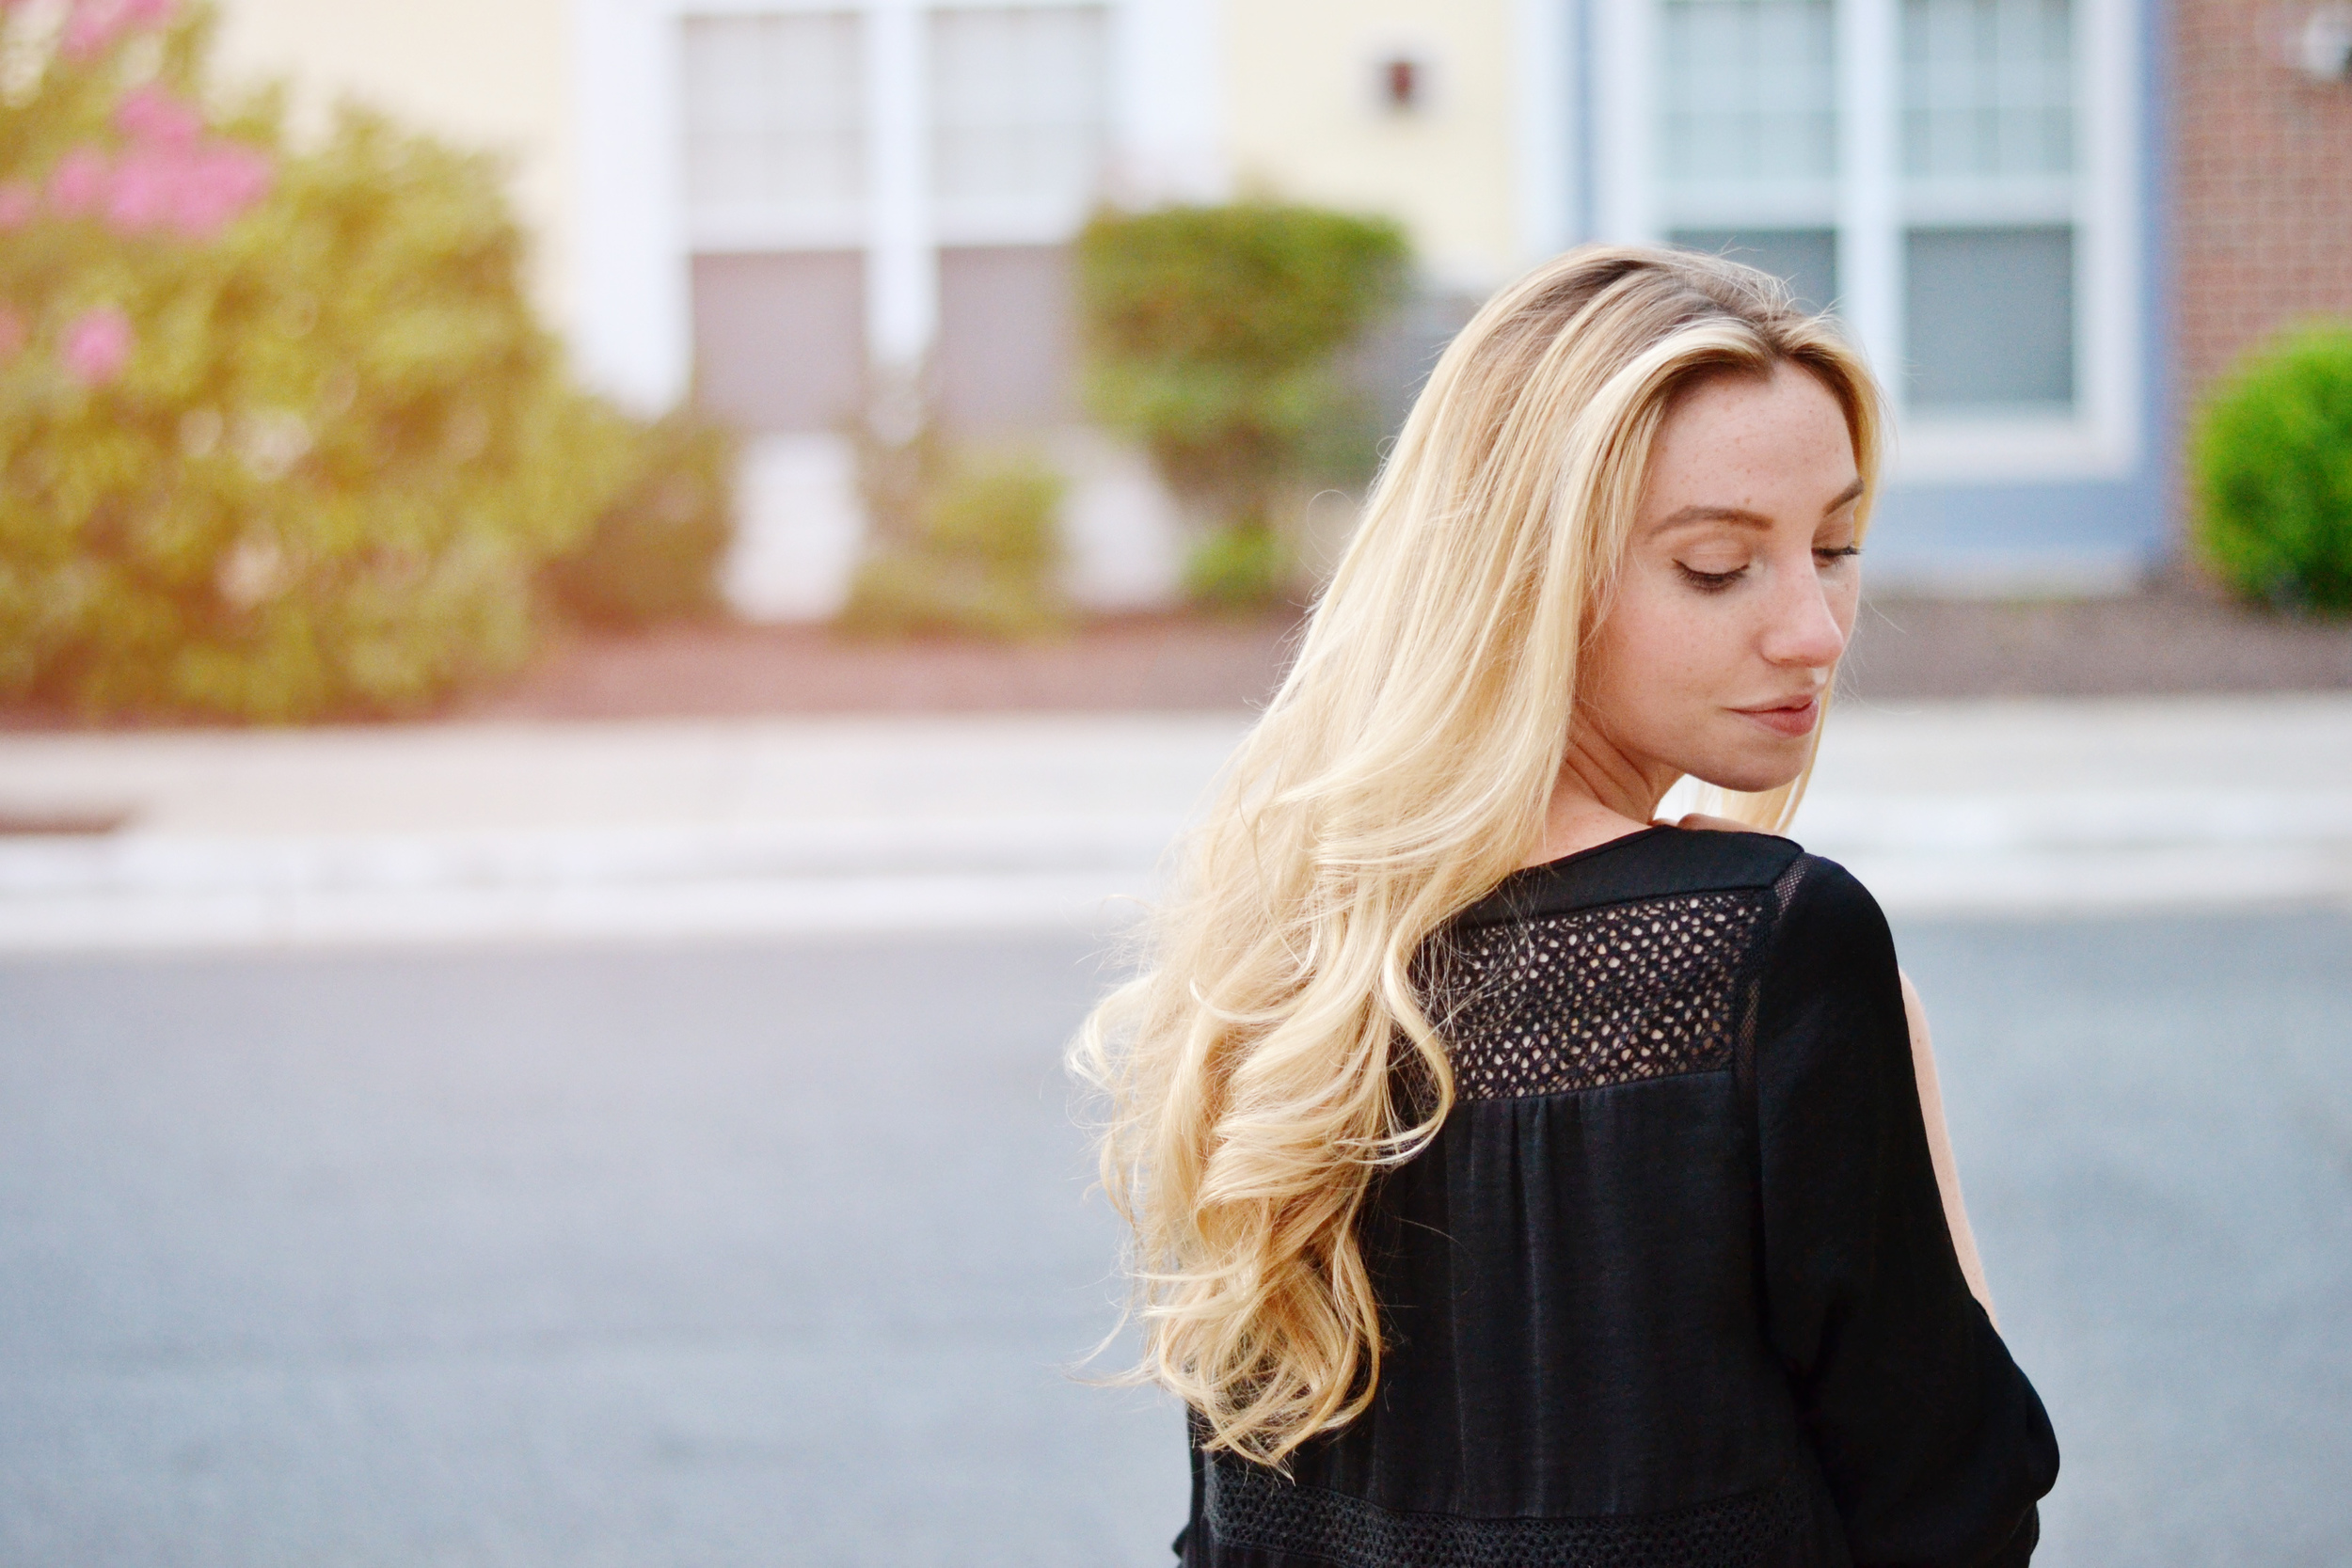 How to care for blonde hair (via Chic Now)